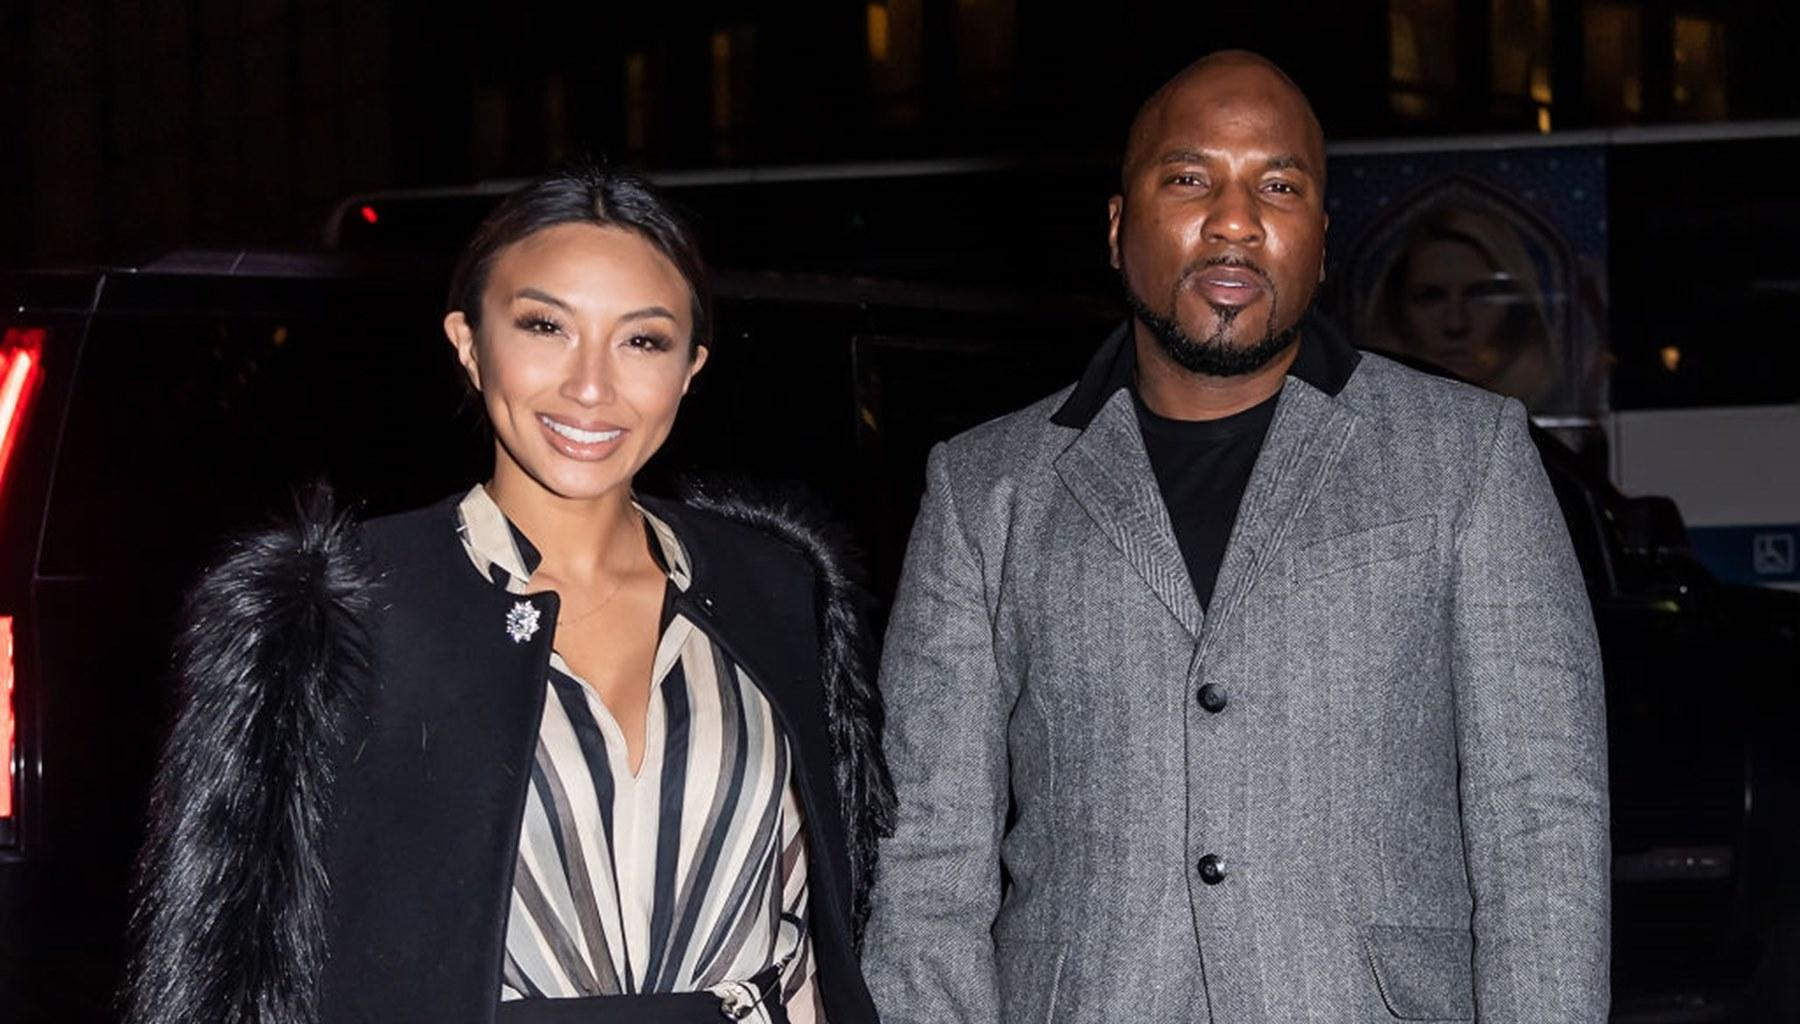 Jeannie Mai Takes On Critics Spewing Hateful And Xenophobic Comments Towards Her Relationship With Jeezy In This Video -- A Co-Host From 'The Real' Gets In To Show Her Love